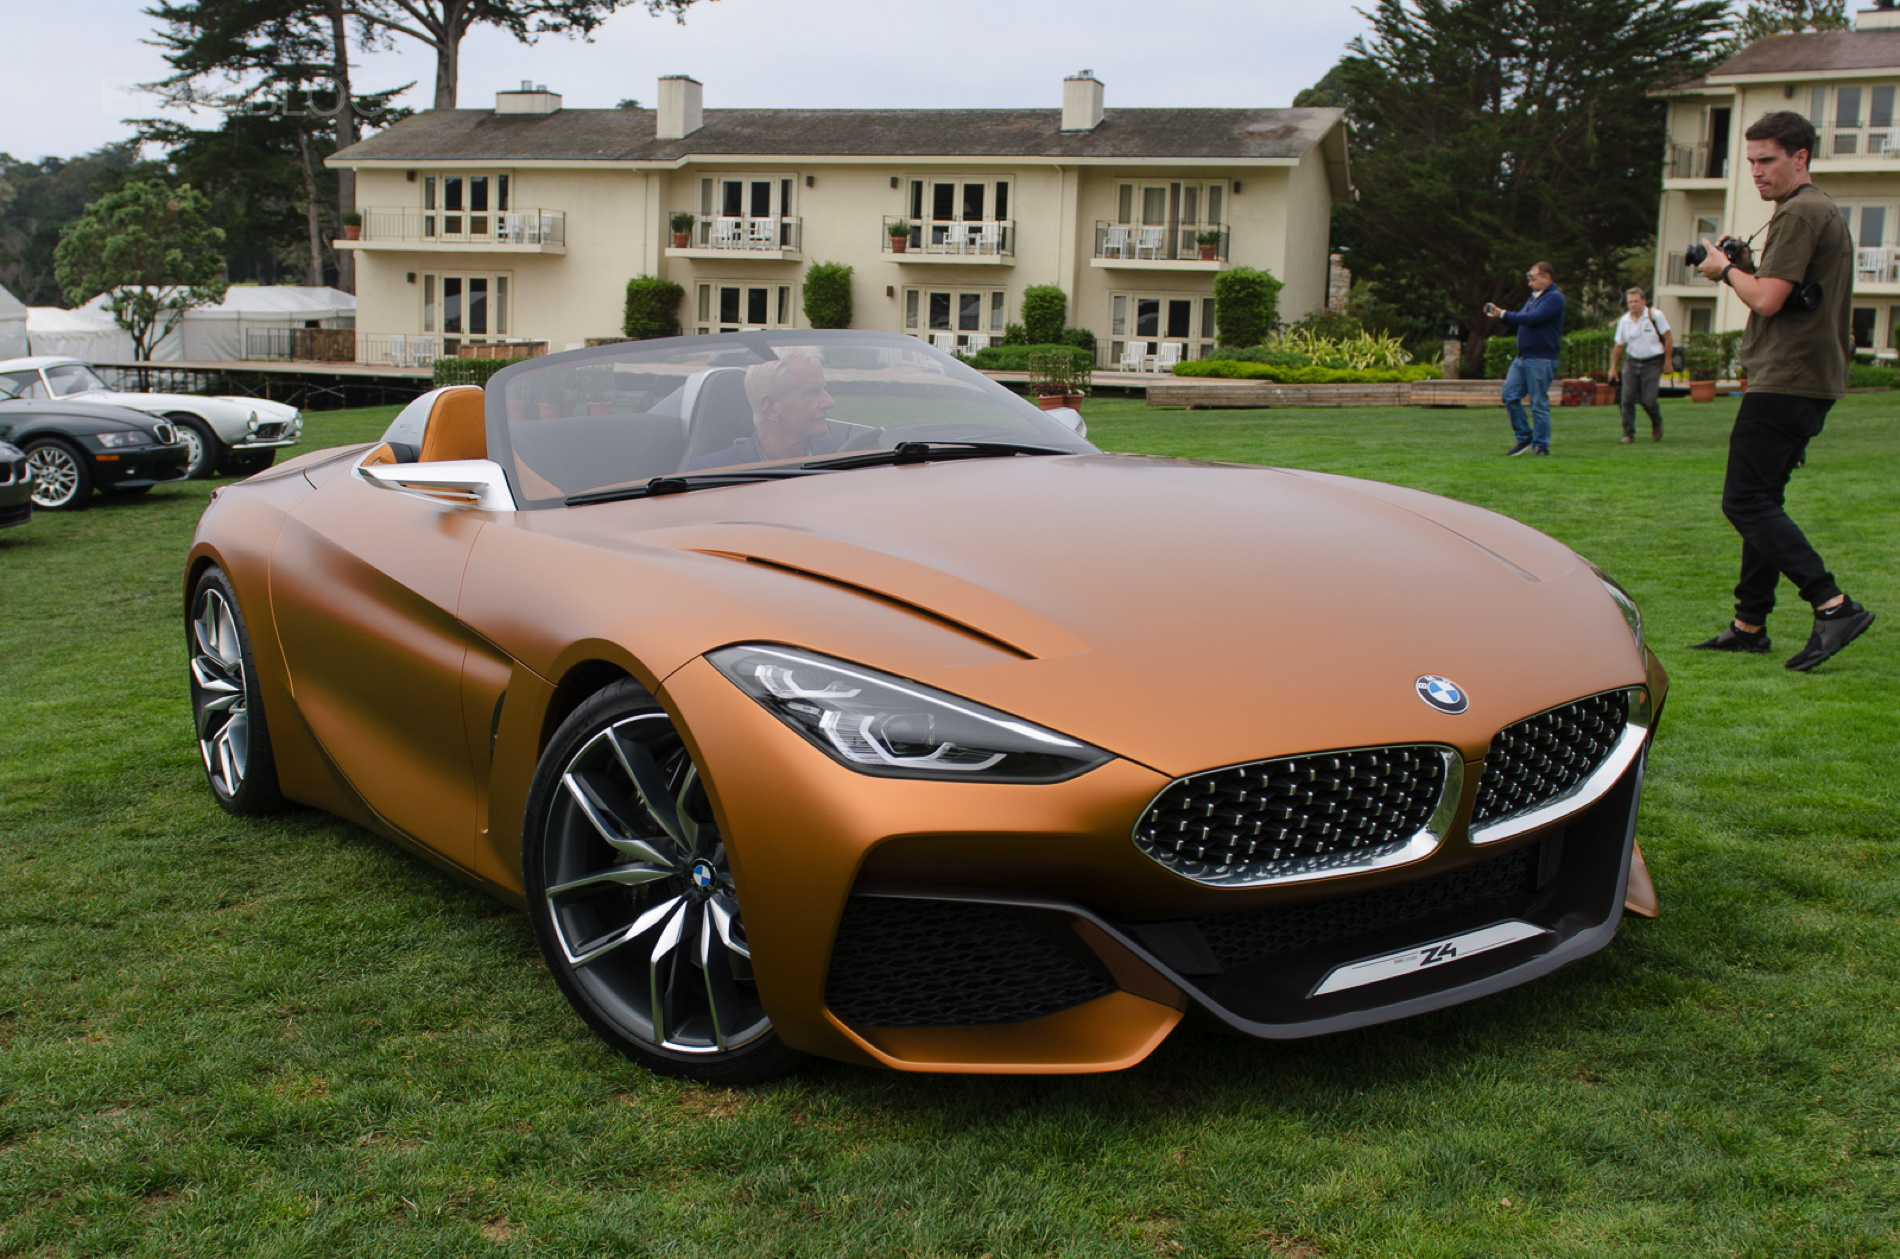 2017 Bmw Z4 Series Price >> First live photos of BMW Concept Z4 at Pebble Beach